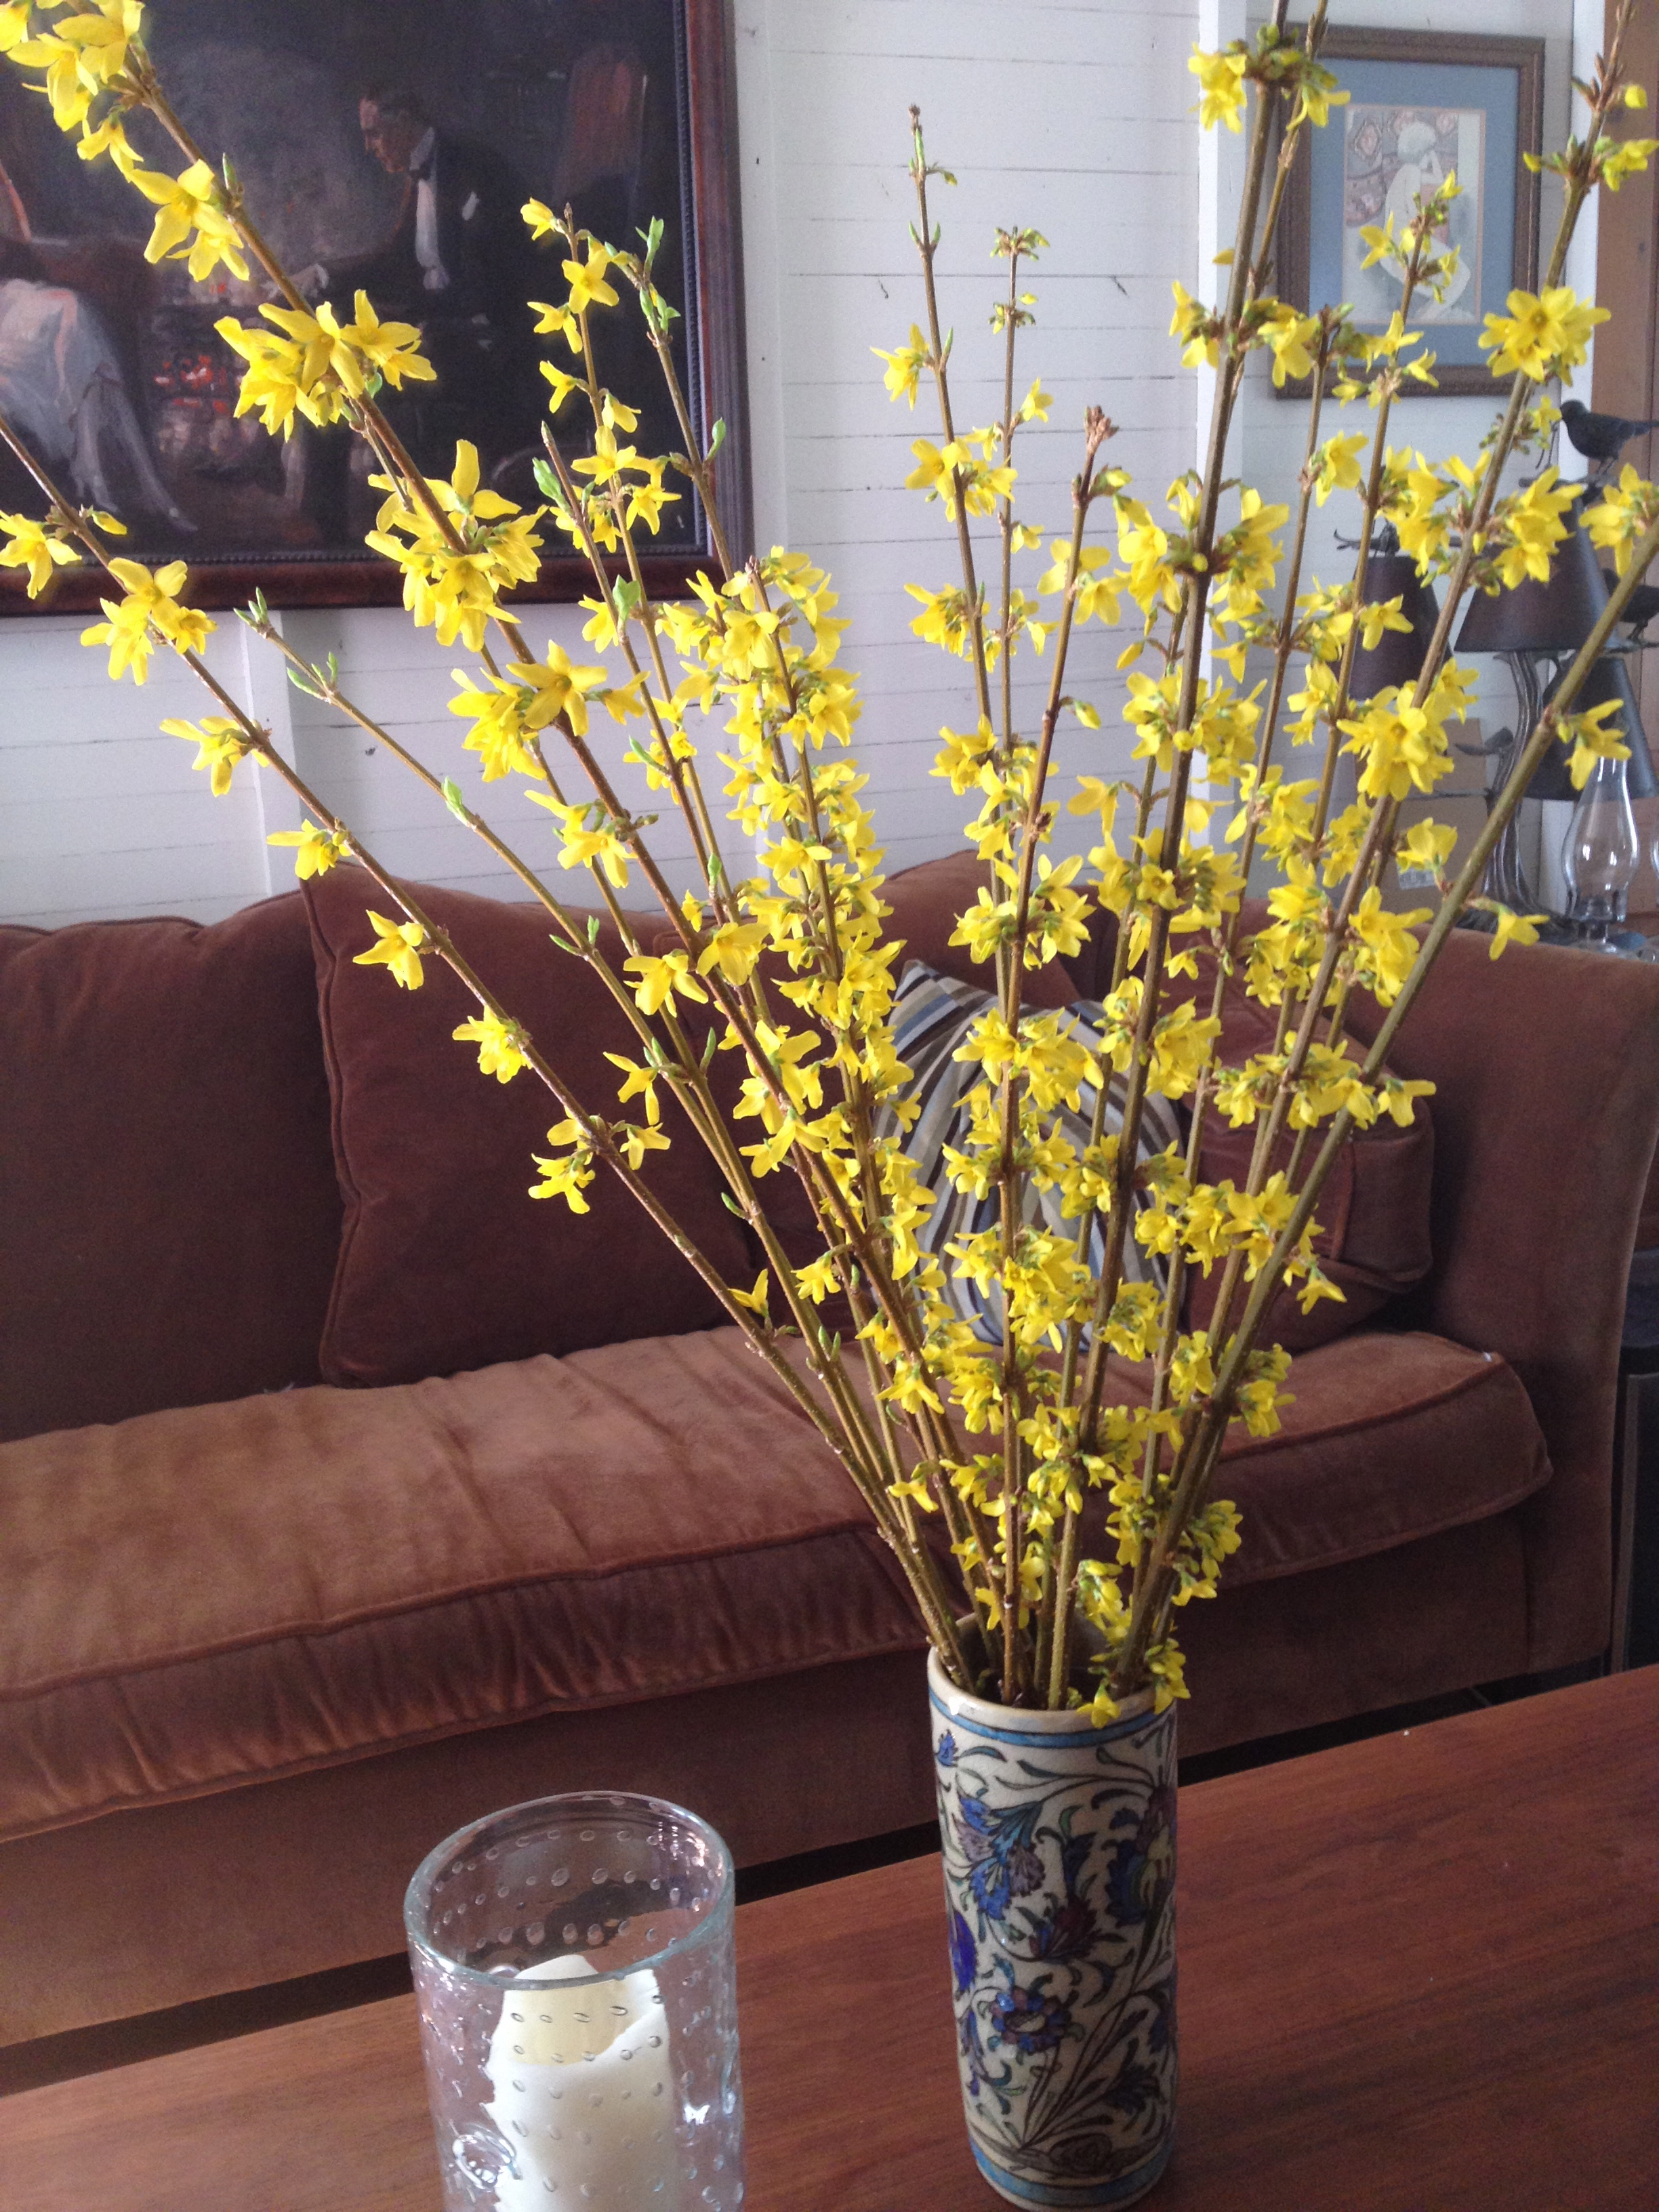 Forsythia in full bloom!